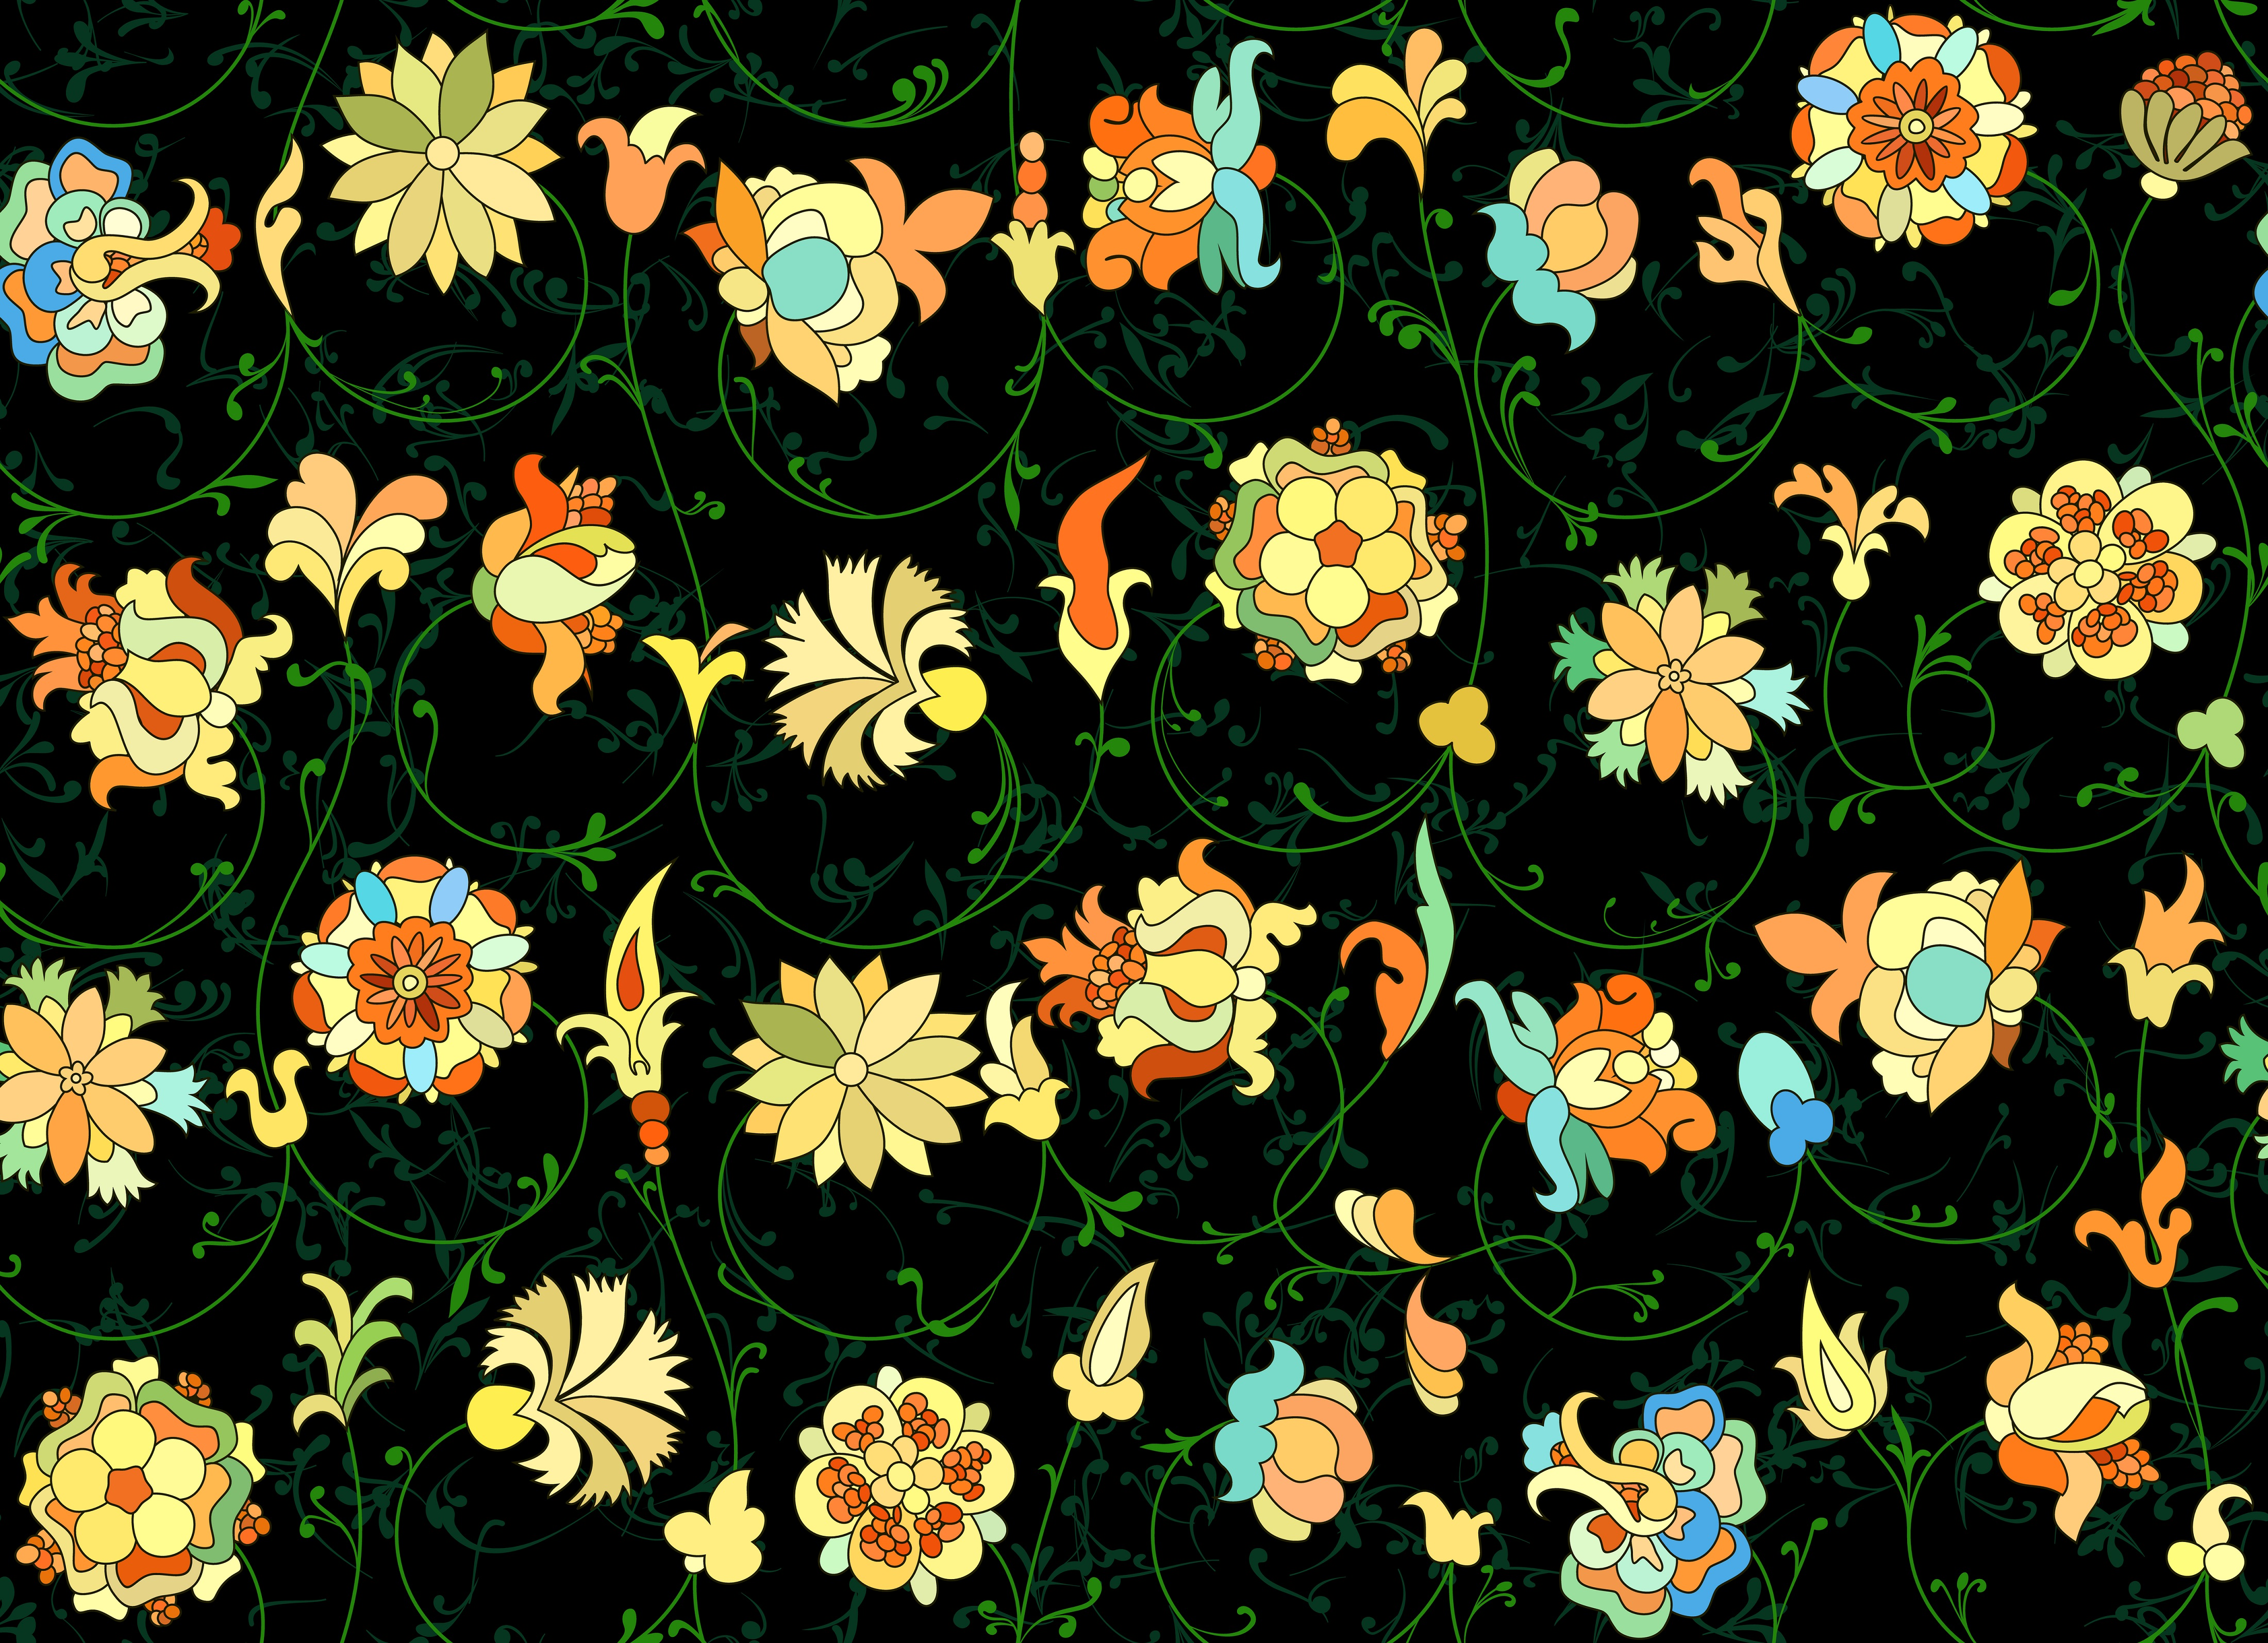 Traditional,Russian,Floral,On,Black,Repeatable,Pattern,Based,On,St